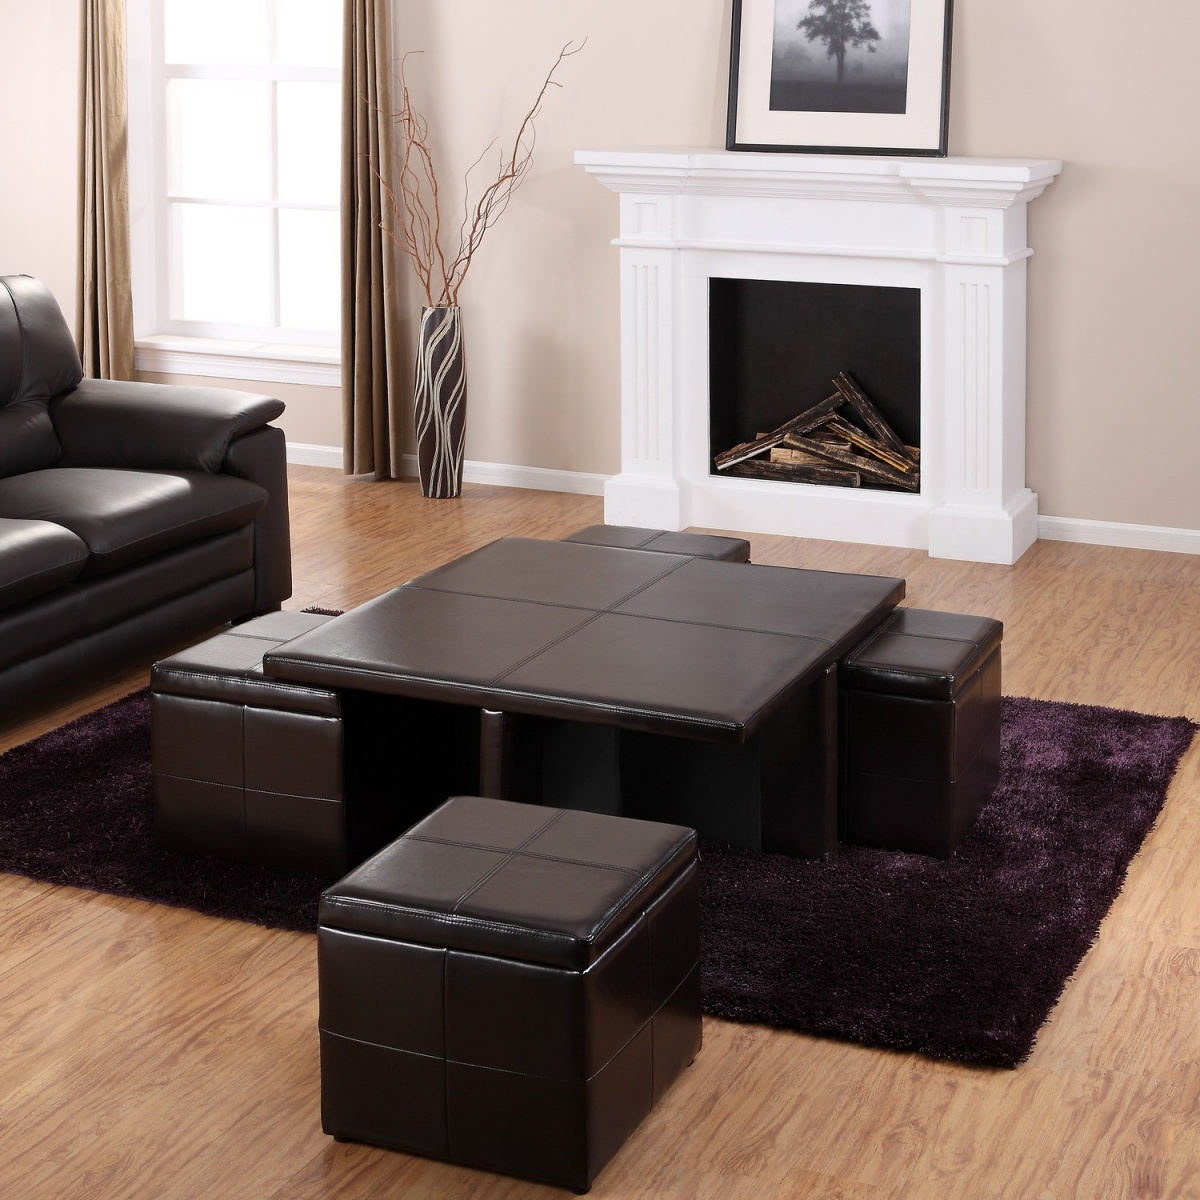 Get a compact and multi functional living room space by for Living room sofa table decorating